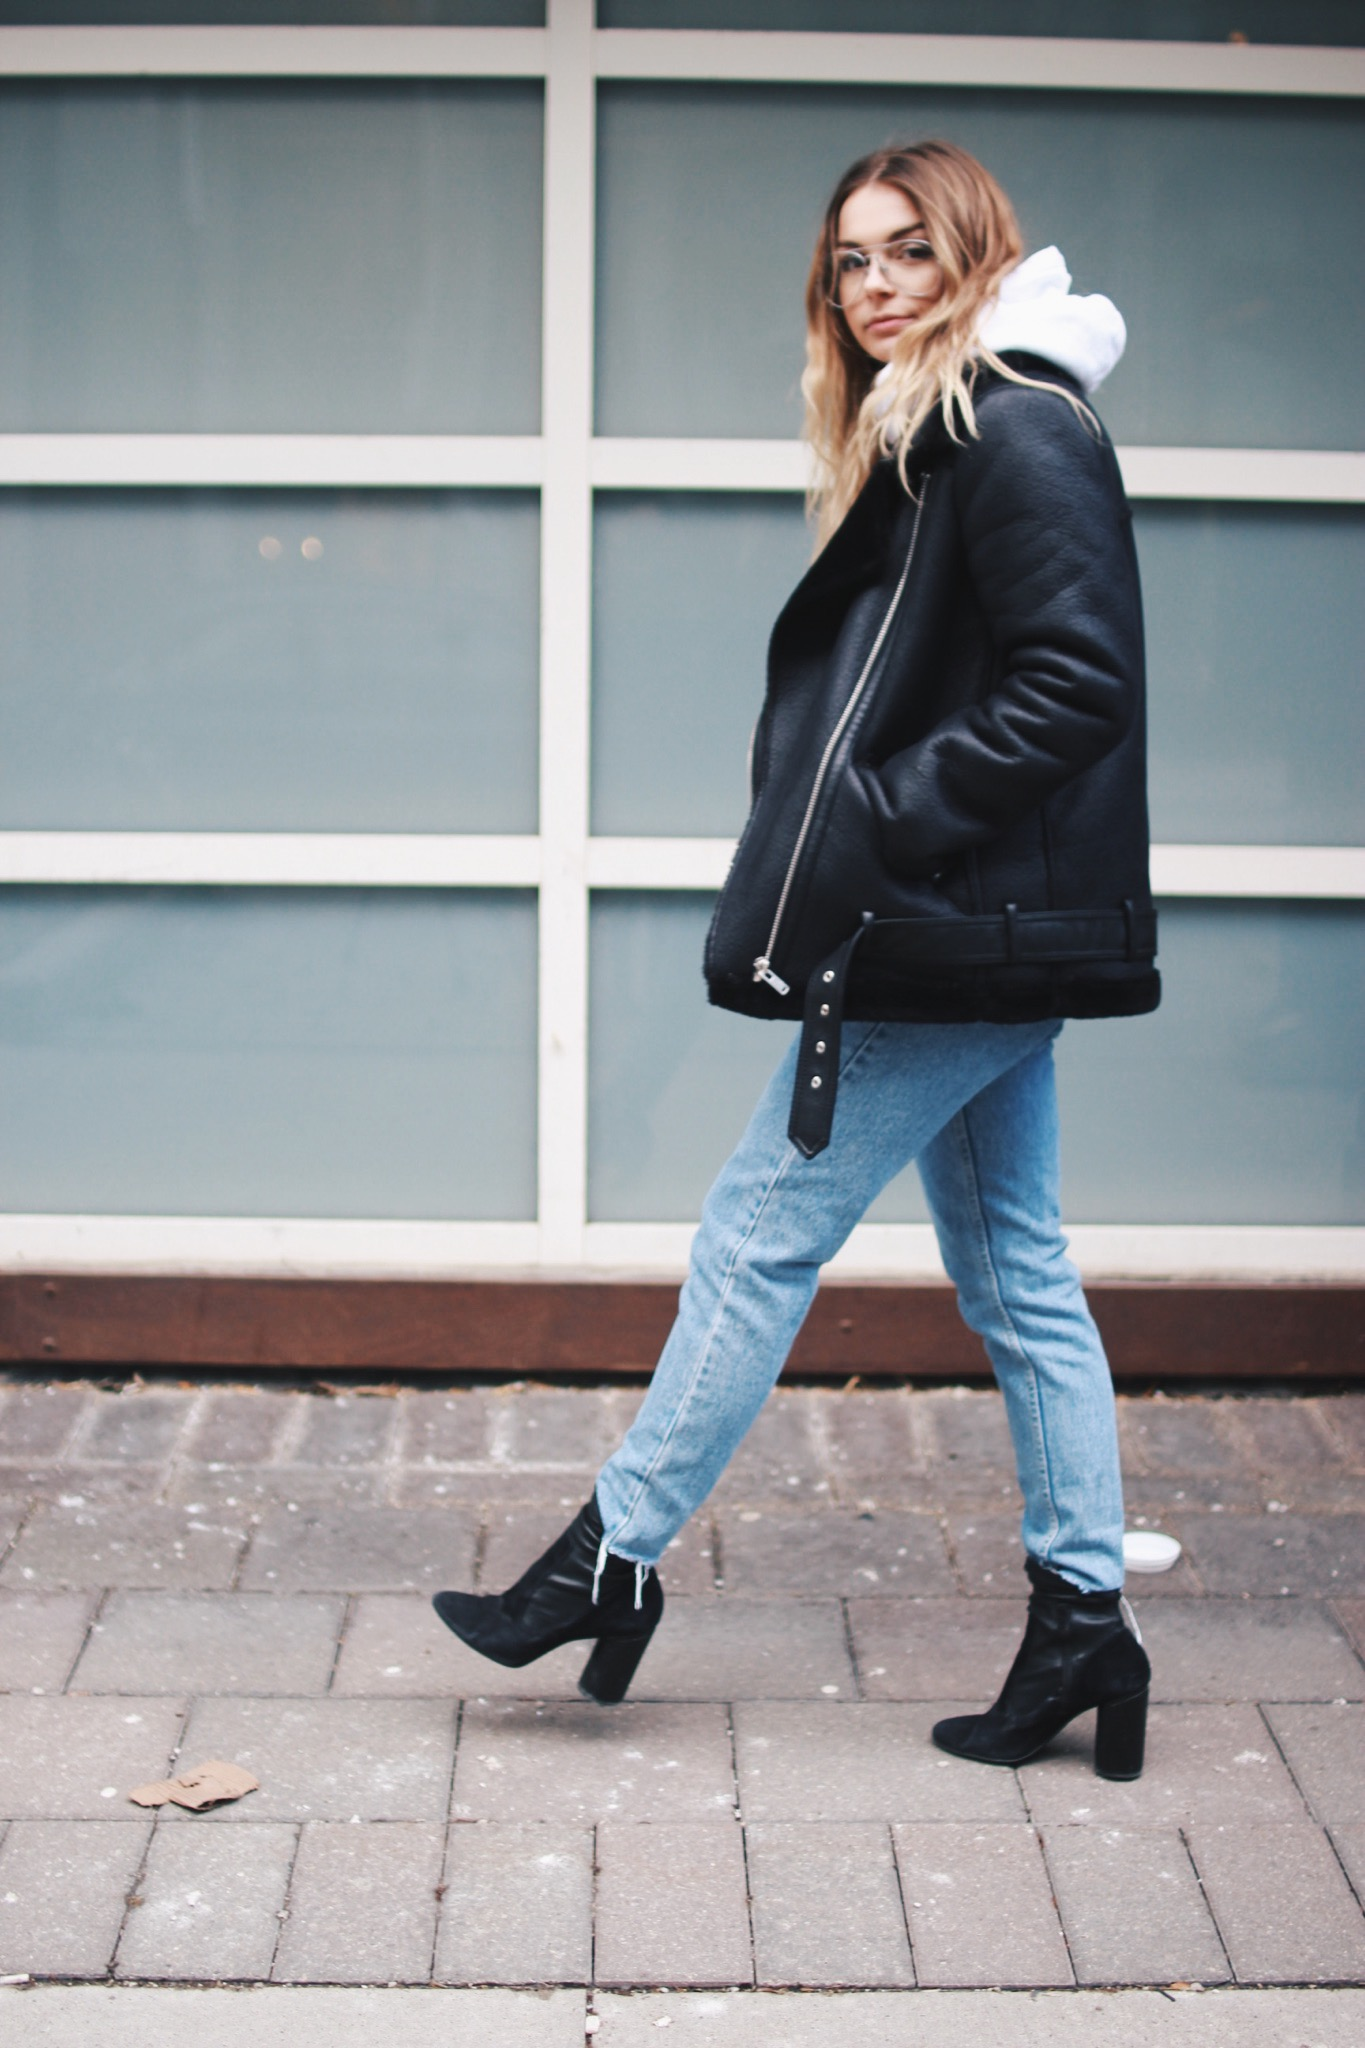 Coat: Zara, Hoodie: Urban Outfitters, Jeans: American Apparel, Boots: Aldo, Glasses: Forever21